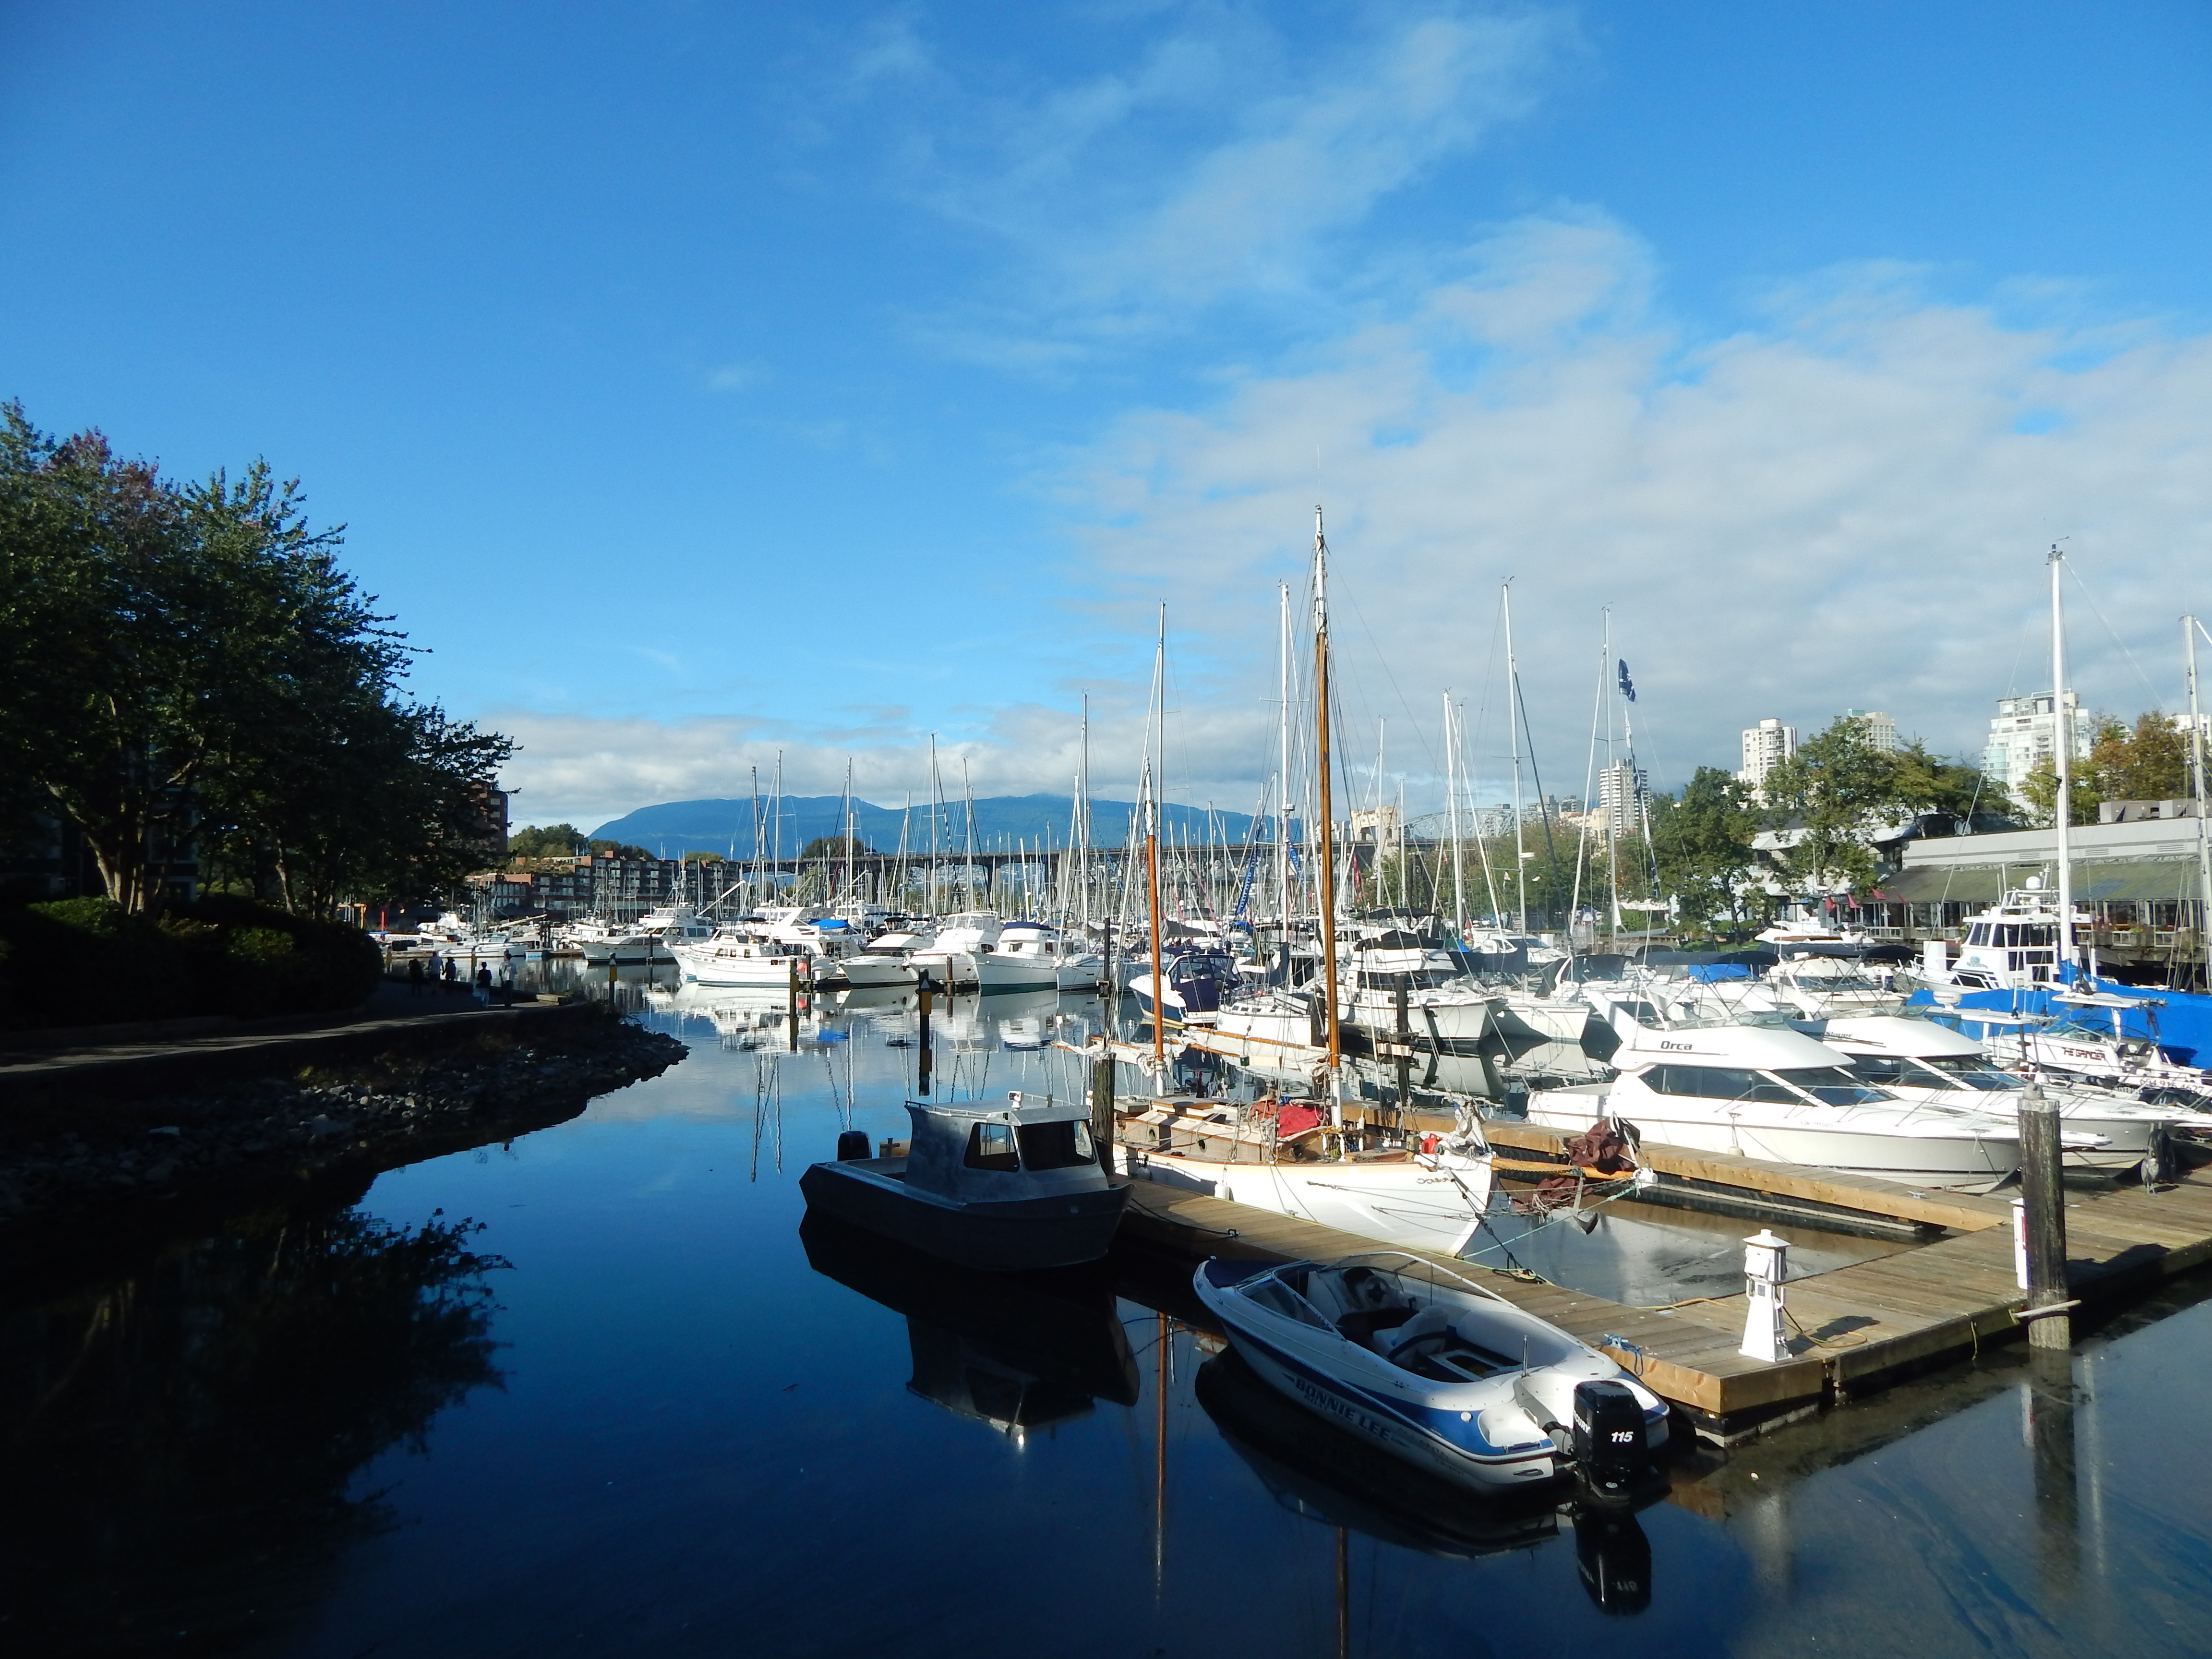 The marina at Granville Island